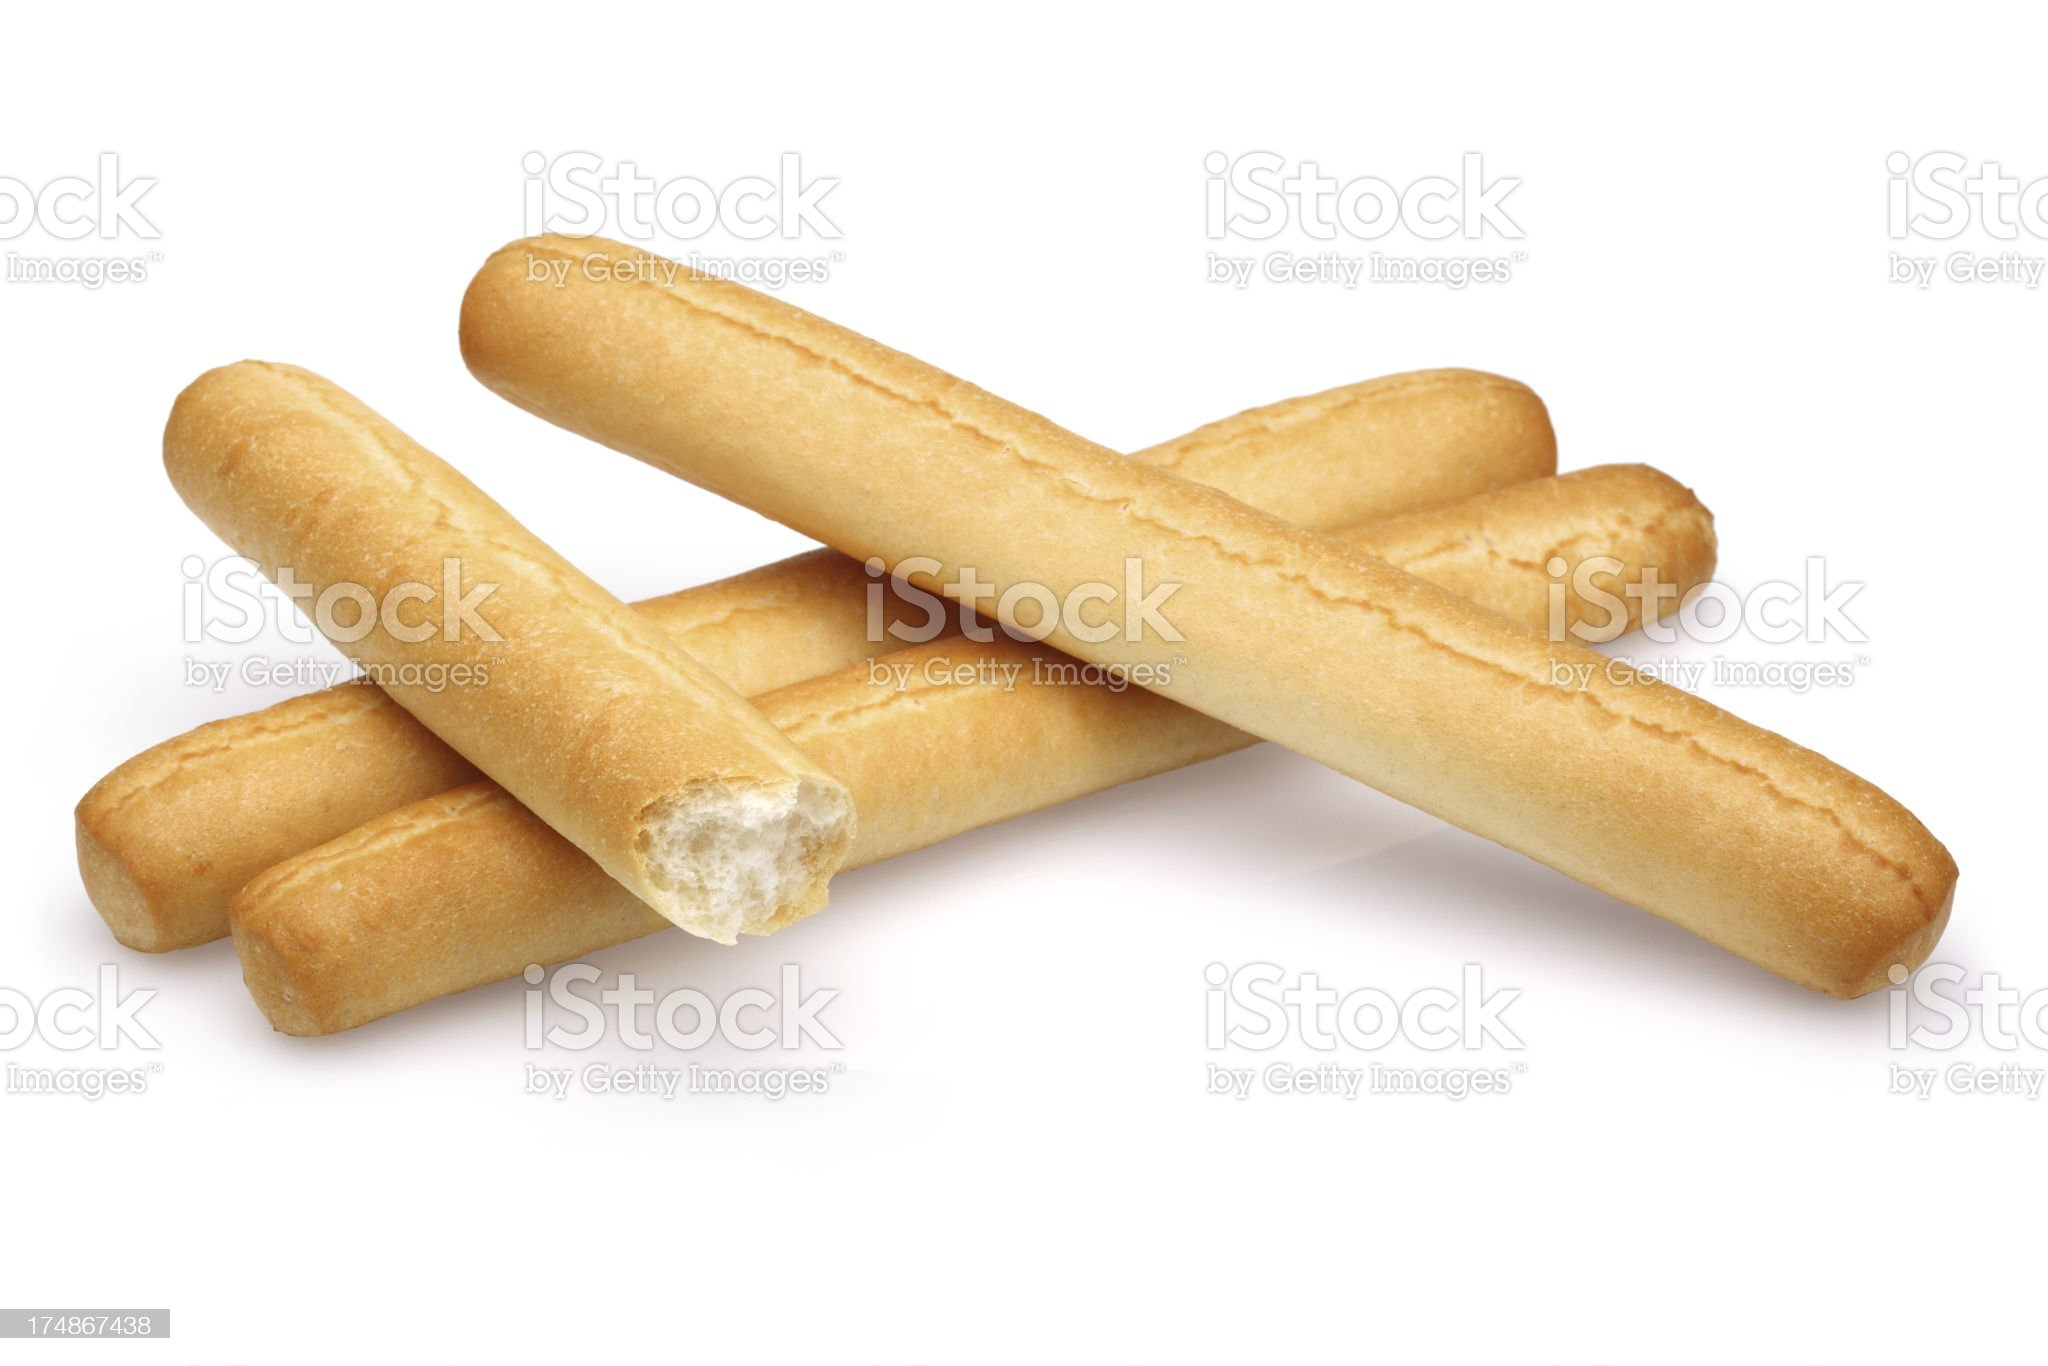 Grissini ( breadstick ) royalty-free stock photo